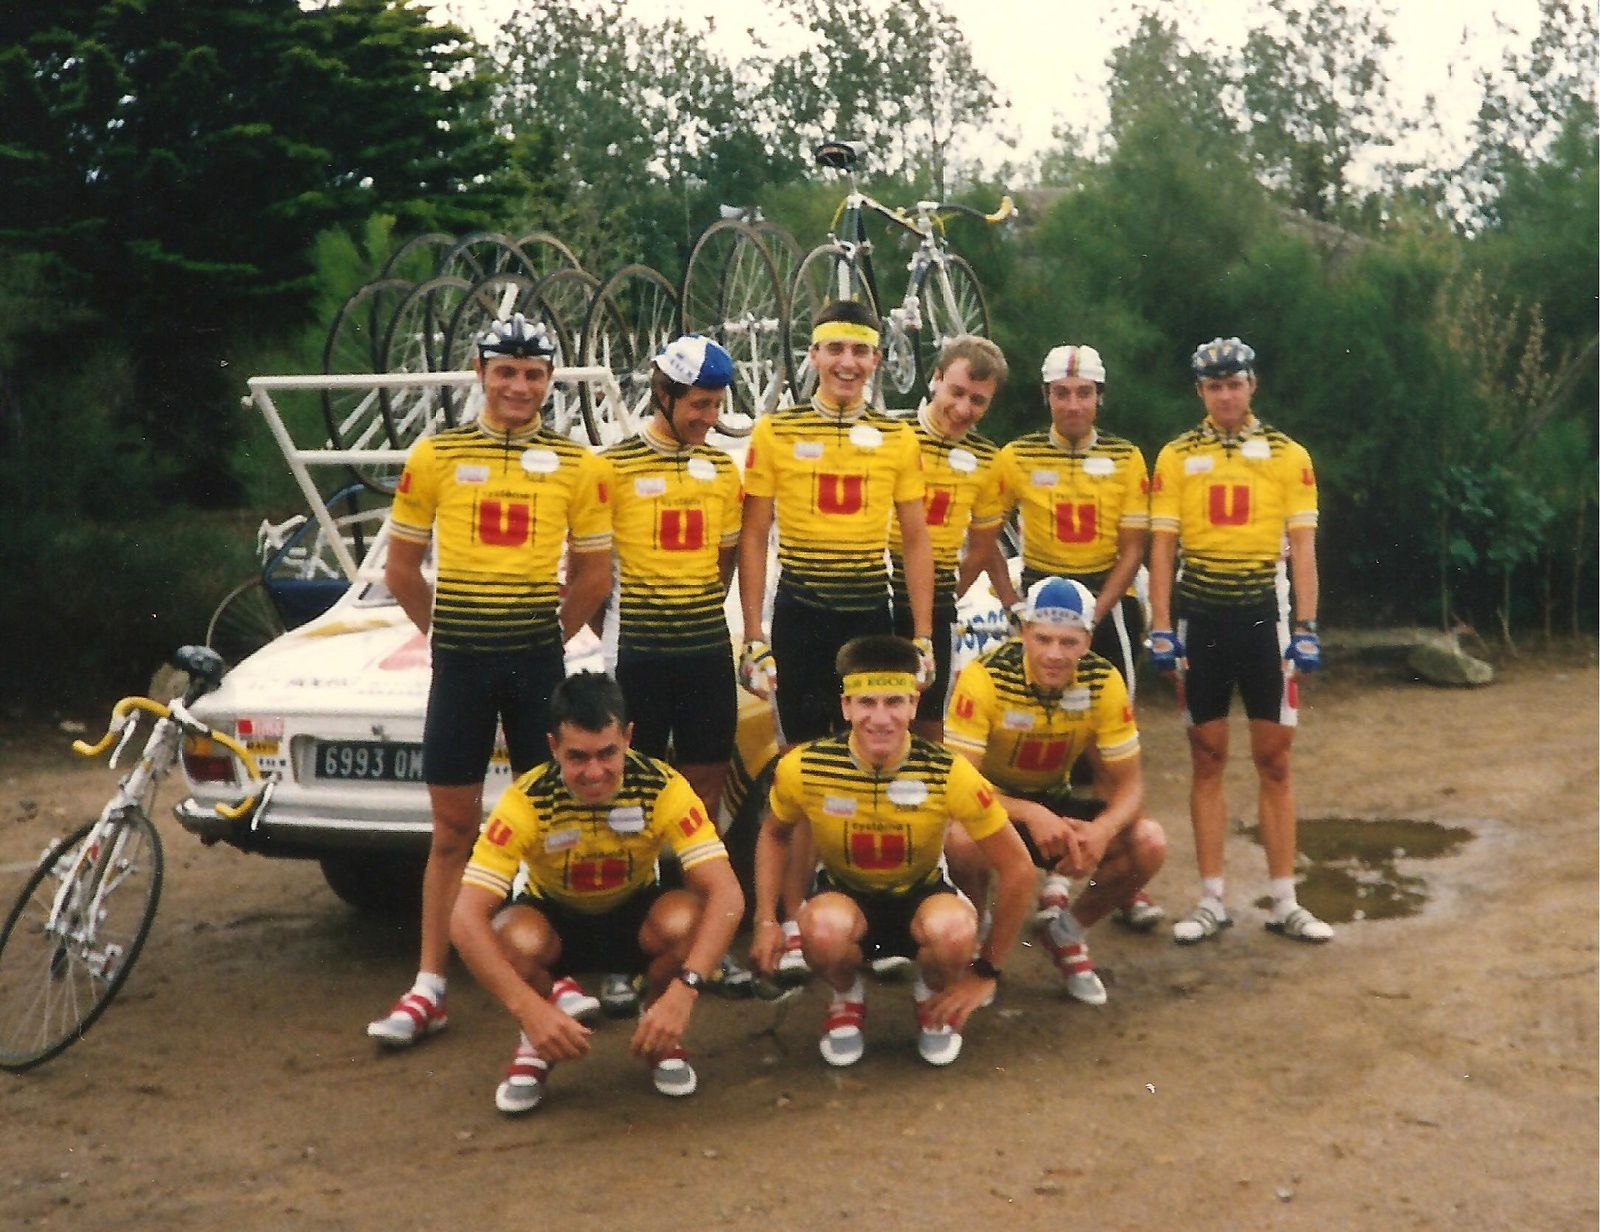 AC Bourg sous la Roche 1988 : Eric Chauvet, Bernard Lermite, Cyrille Martin, Jean-Marc Michon, Philippe Lièvre, Andy Guy (GB), accroupis, Andy Hurford, Christian Blanchard et Piers Hewitt (GB).